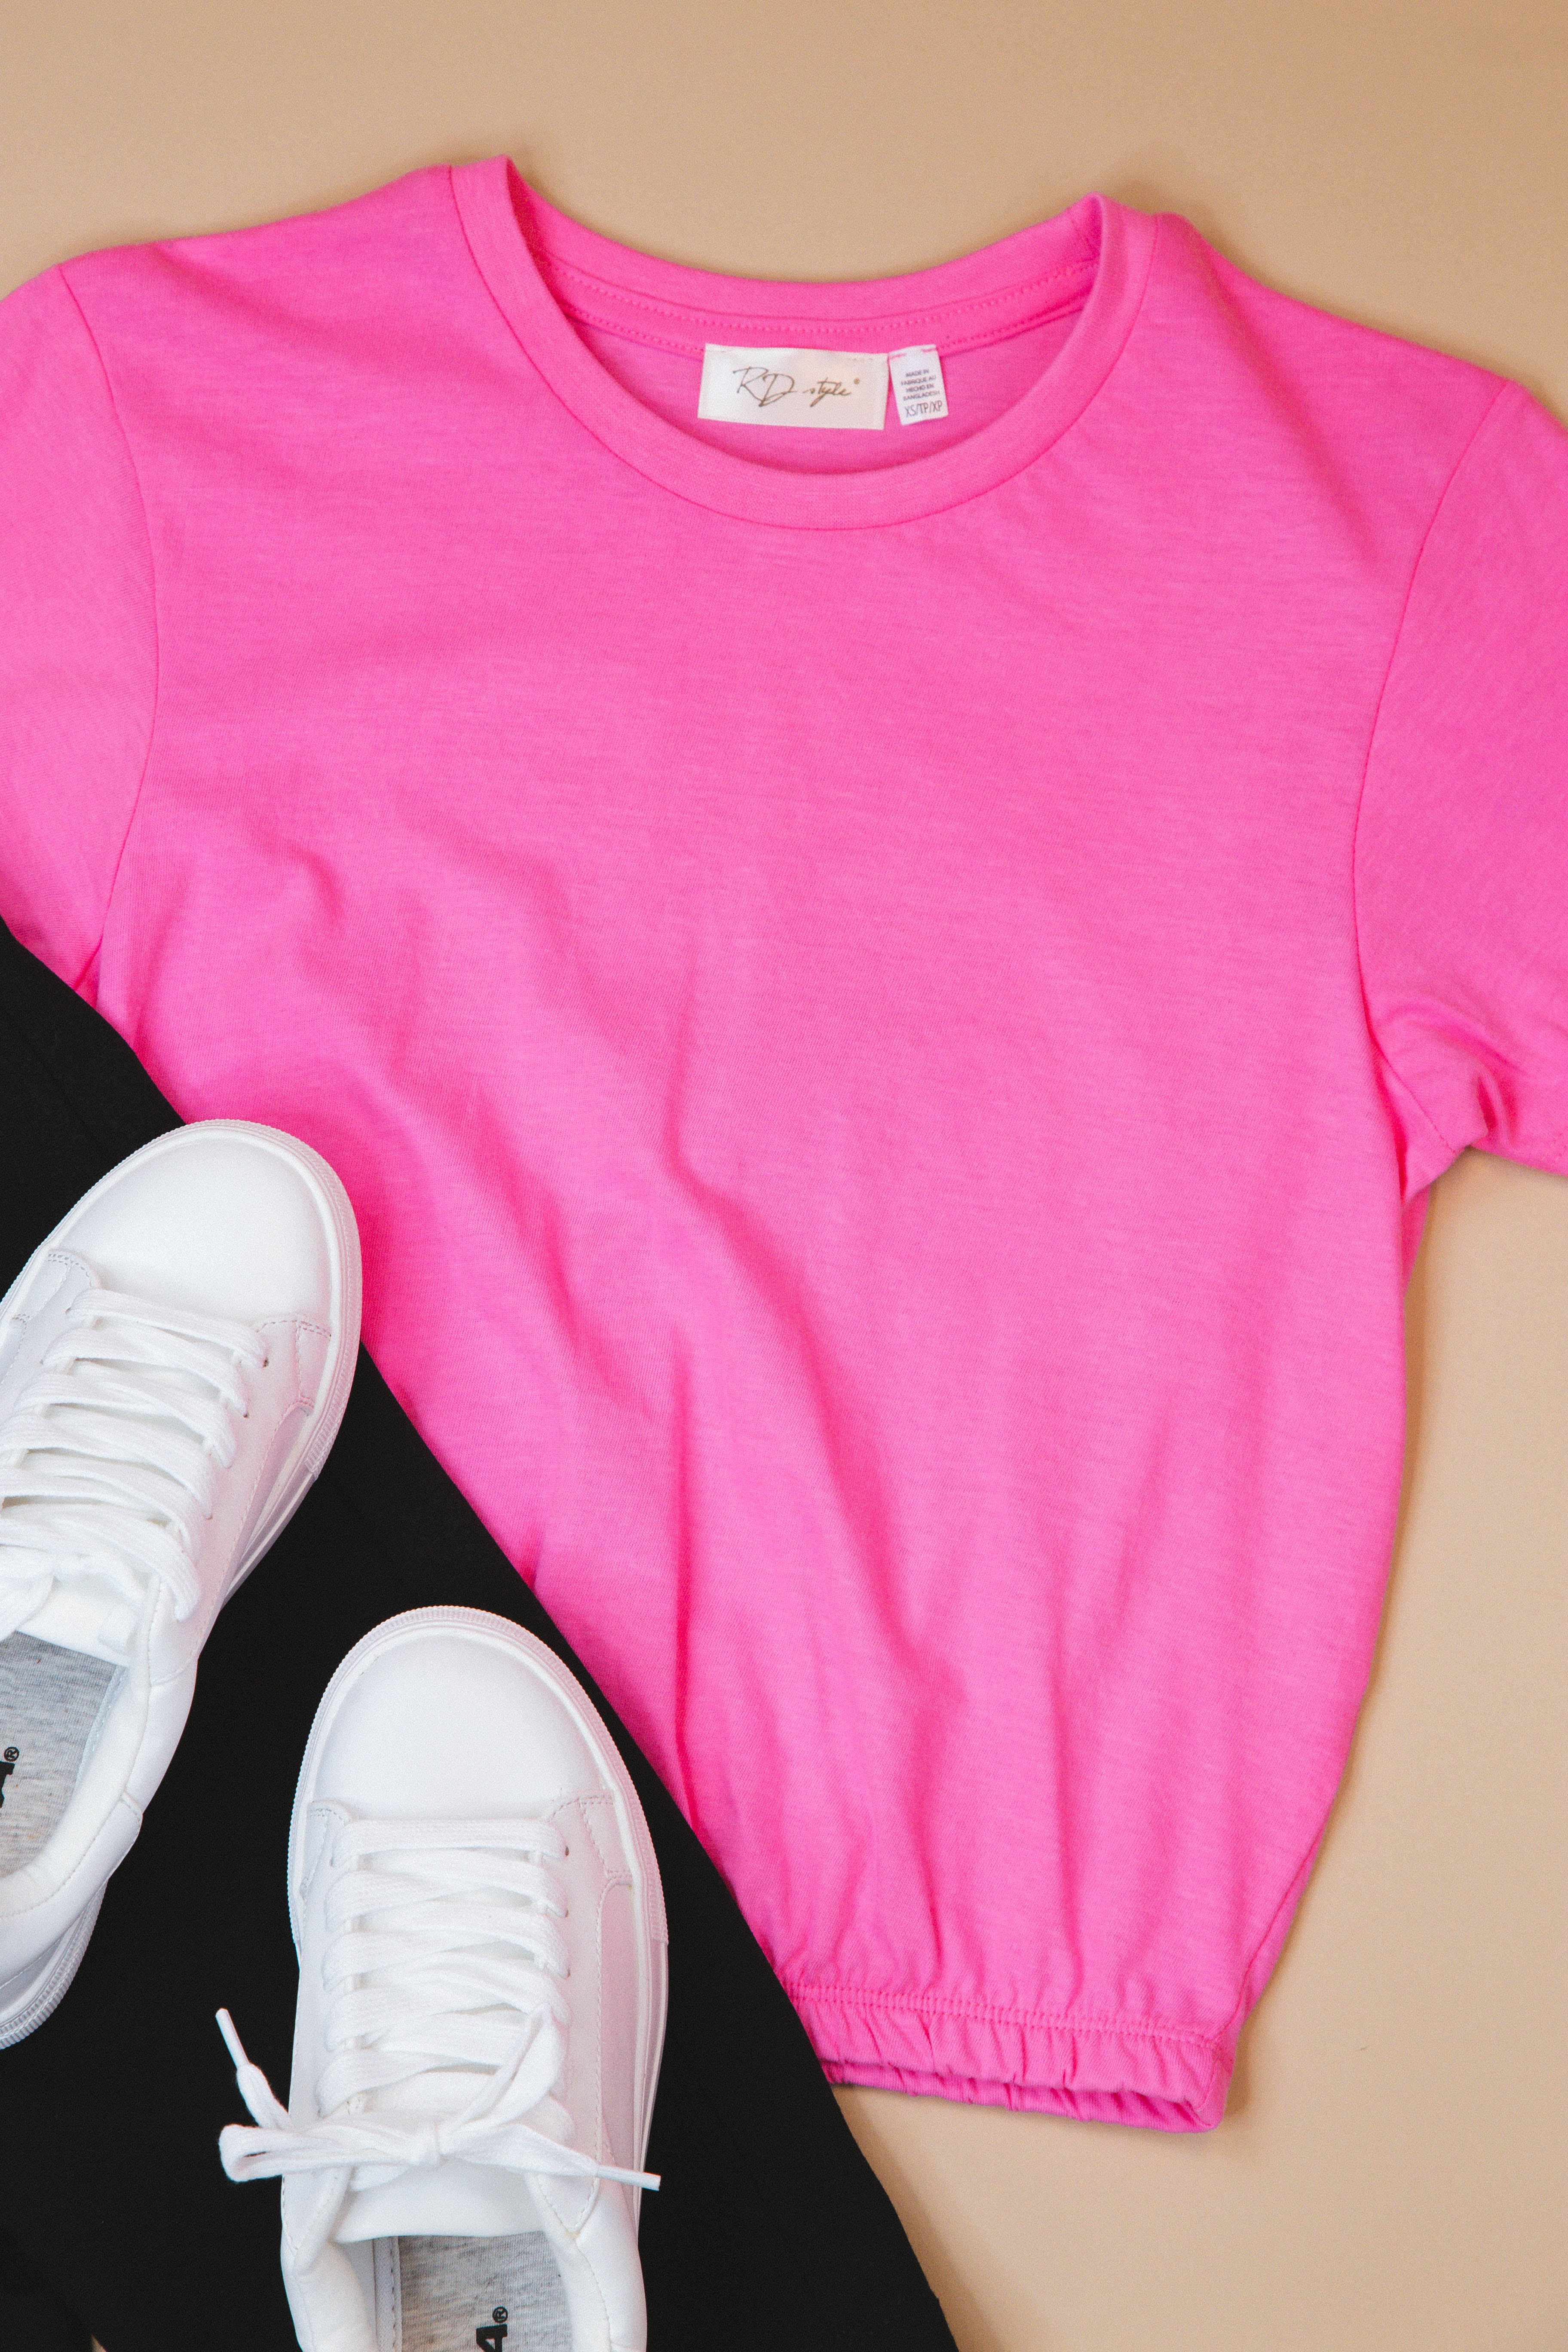 Someone New Round Neck Tee Pink | RD Style